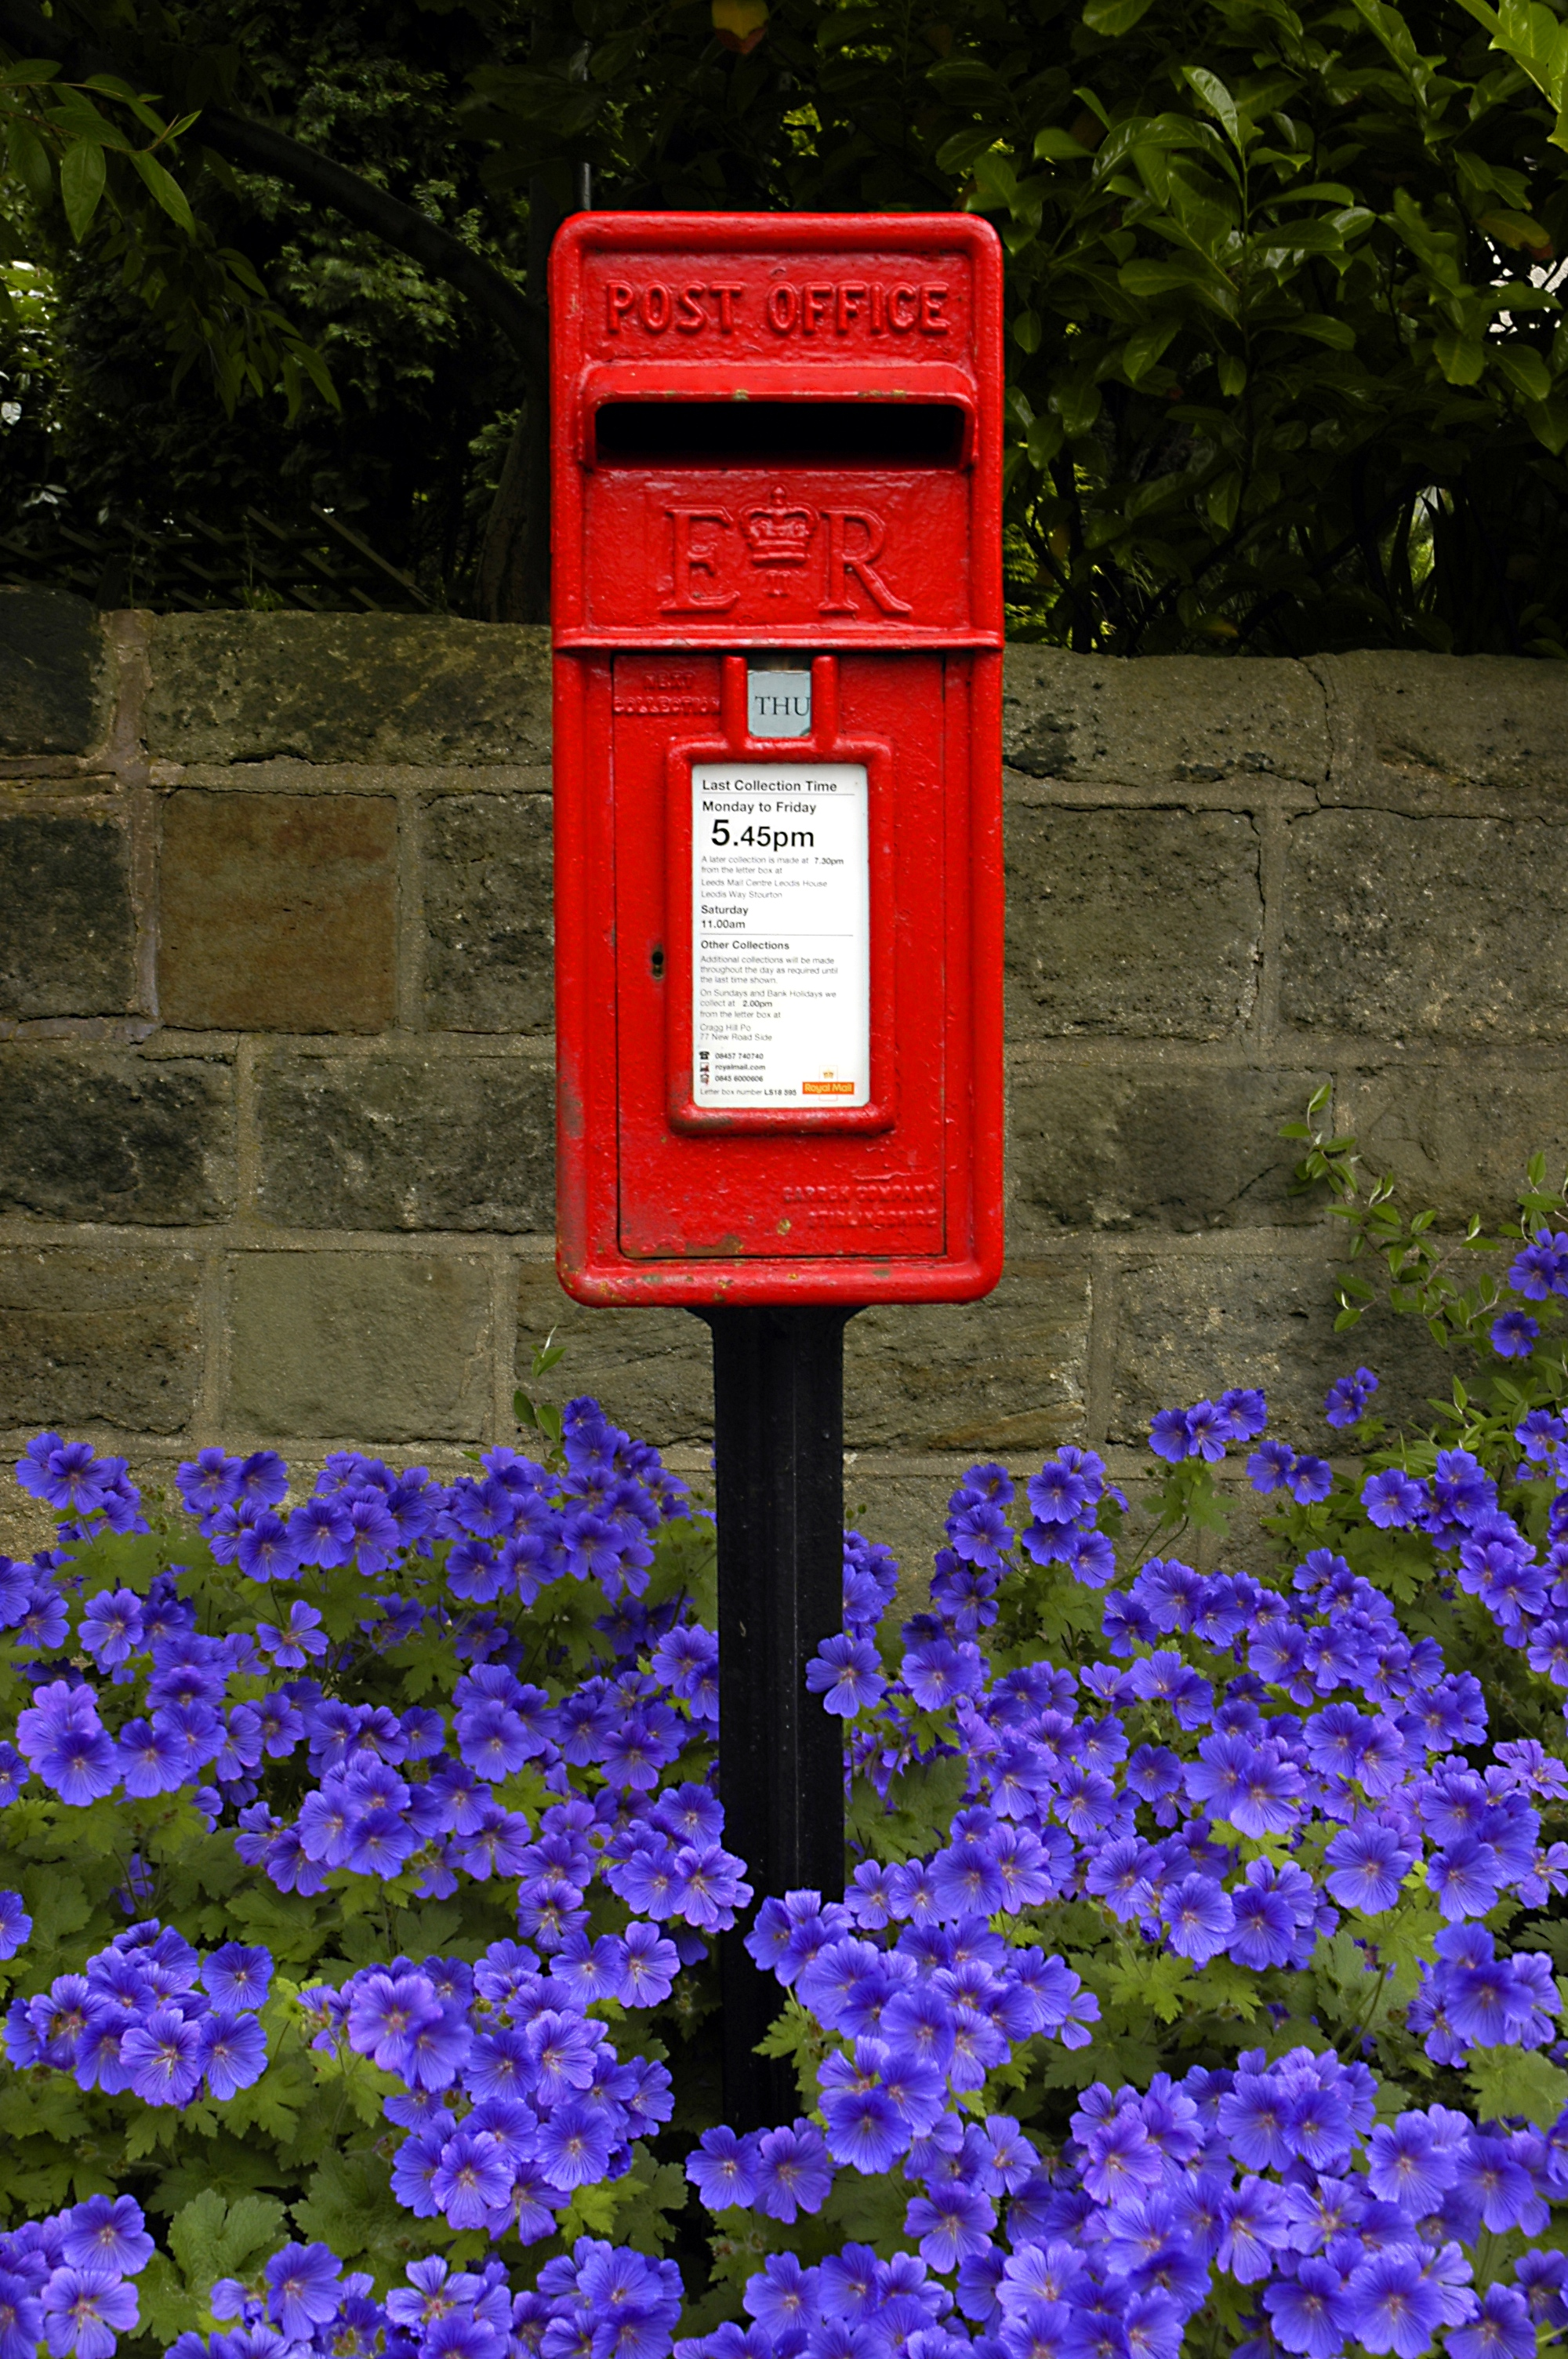 photo of an English post box in amongst blue flowers